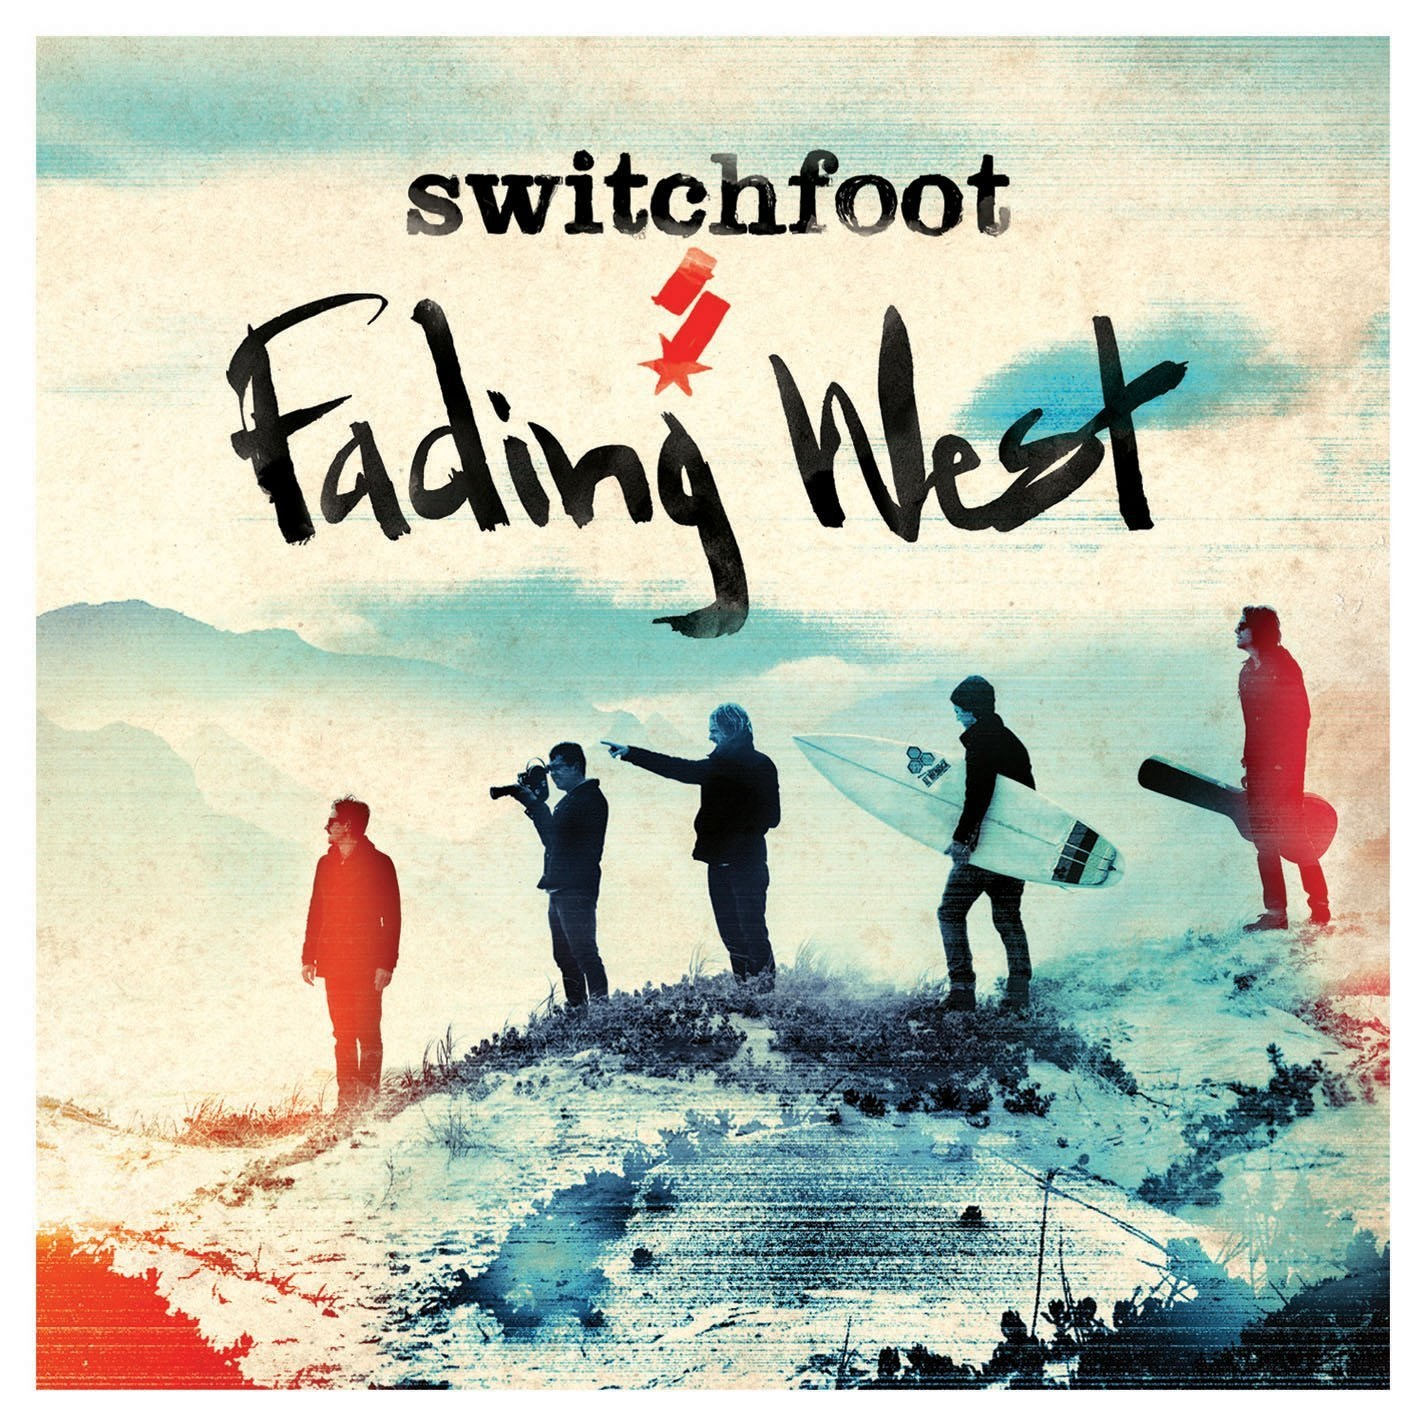 Switchfoot's New Album, Fading West, Available Today